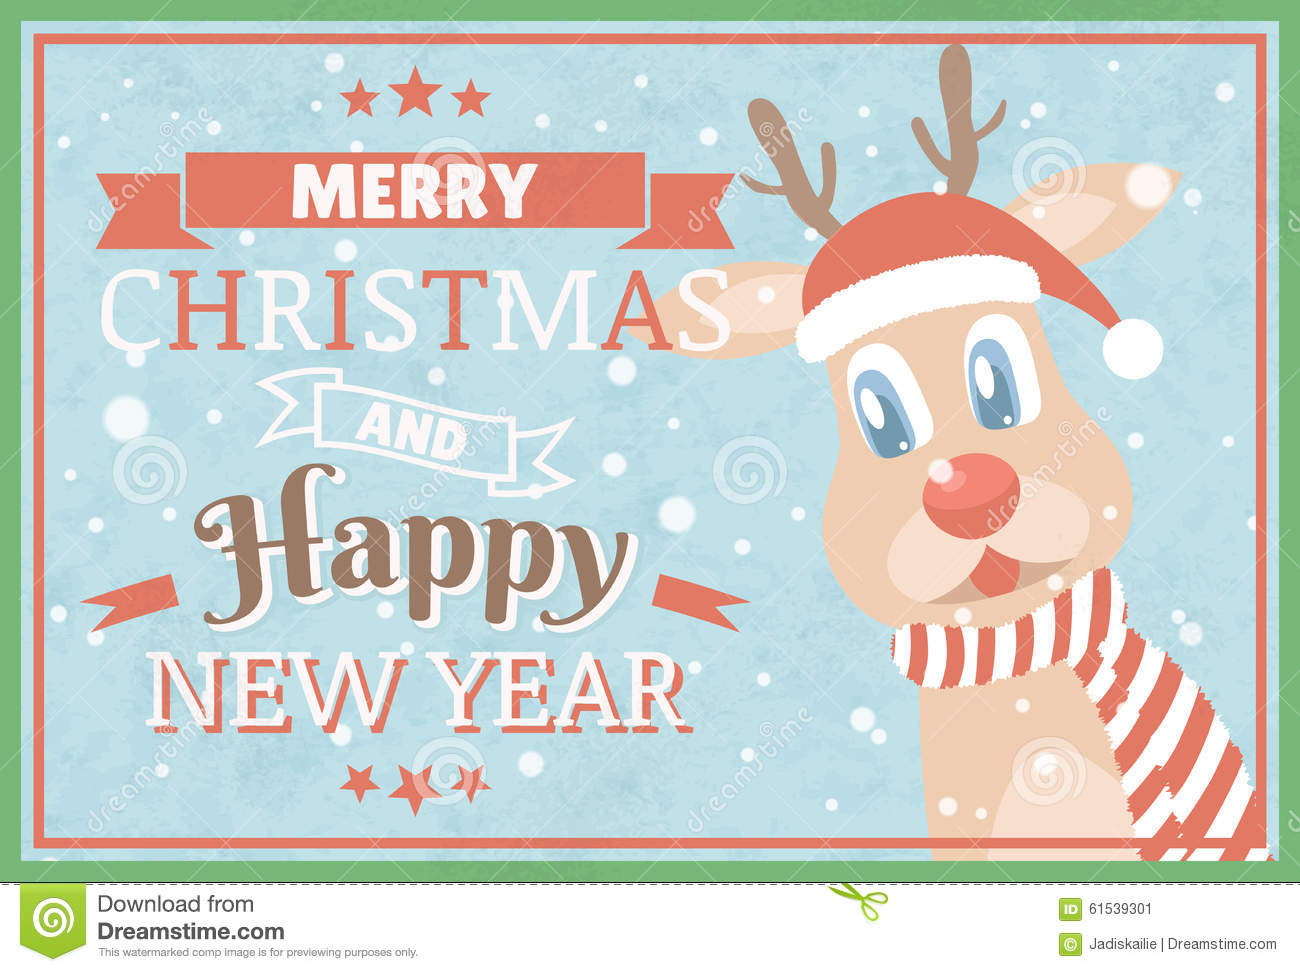 Merry Christmas And Happy New Year. Christmas Greeting Cards. Stock ...